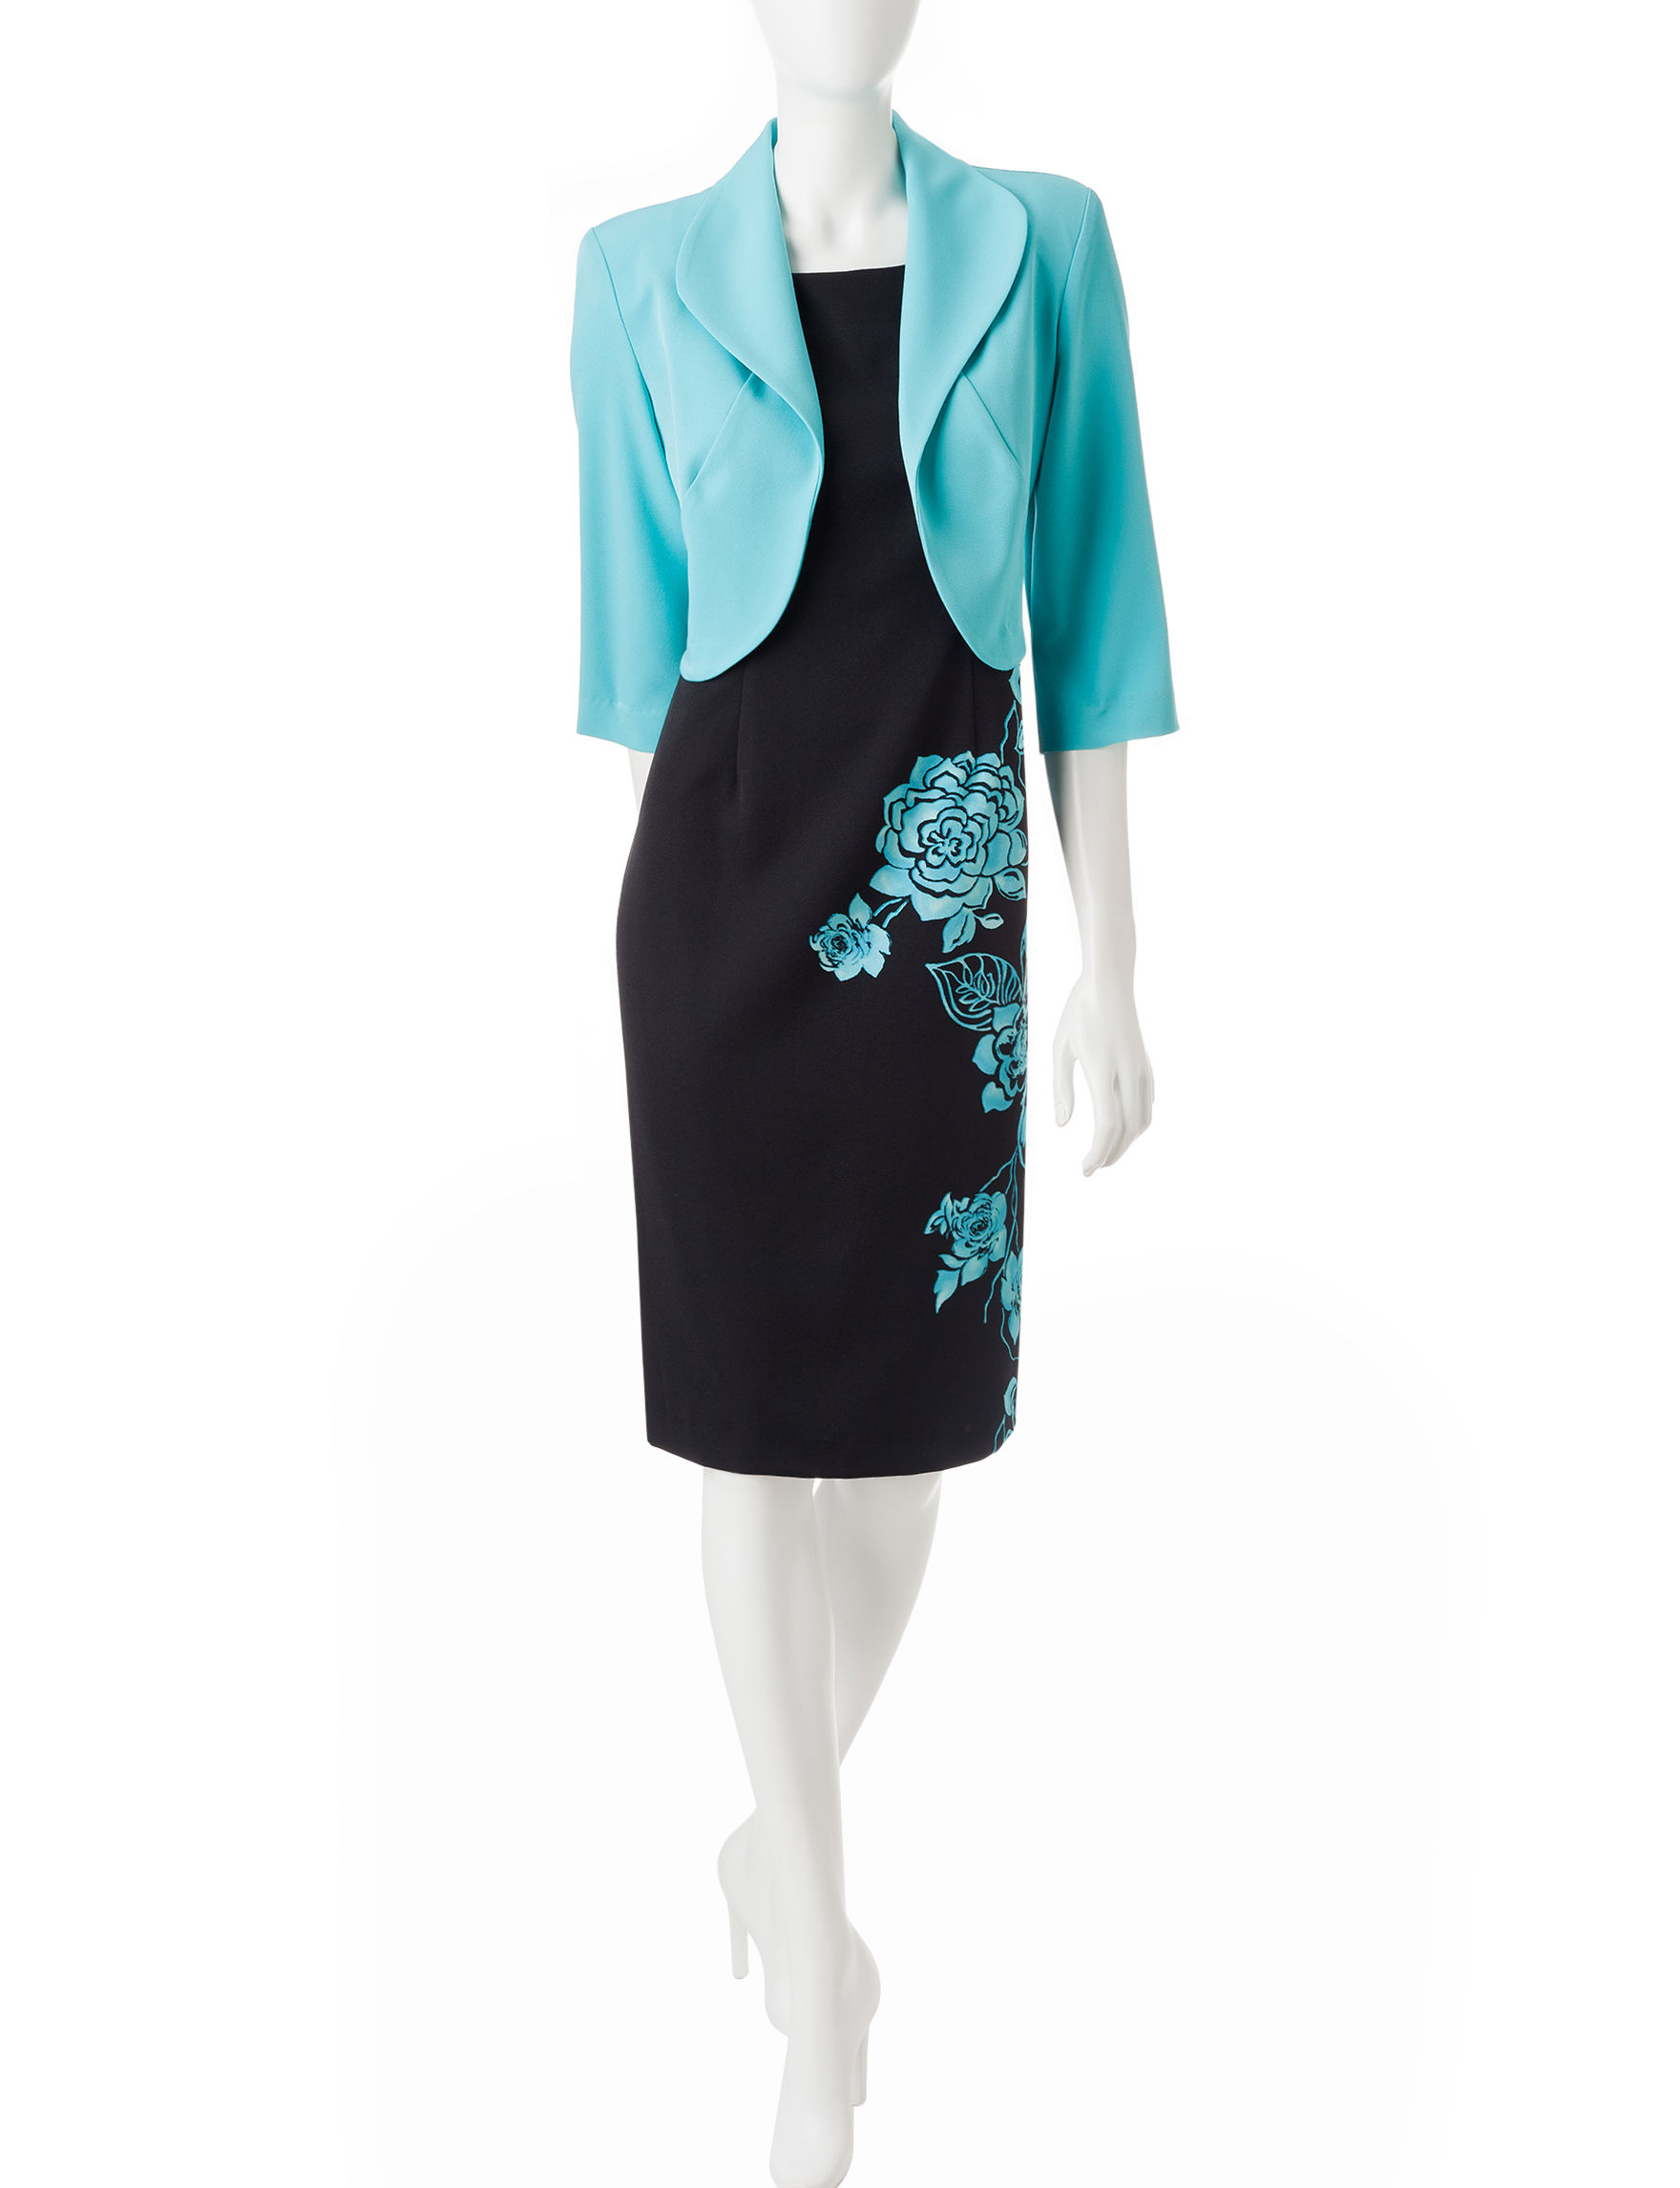 Dana Kay Turquoise Everyday & Casual Jacket Dresses